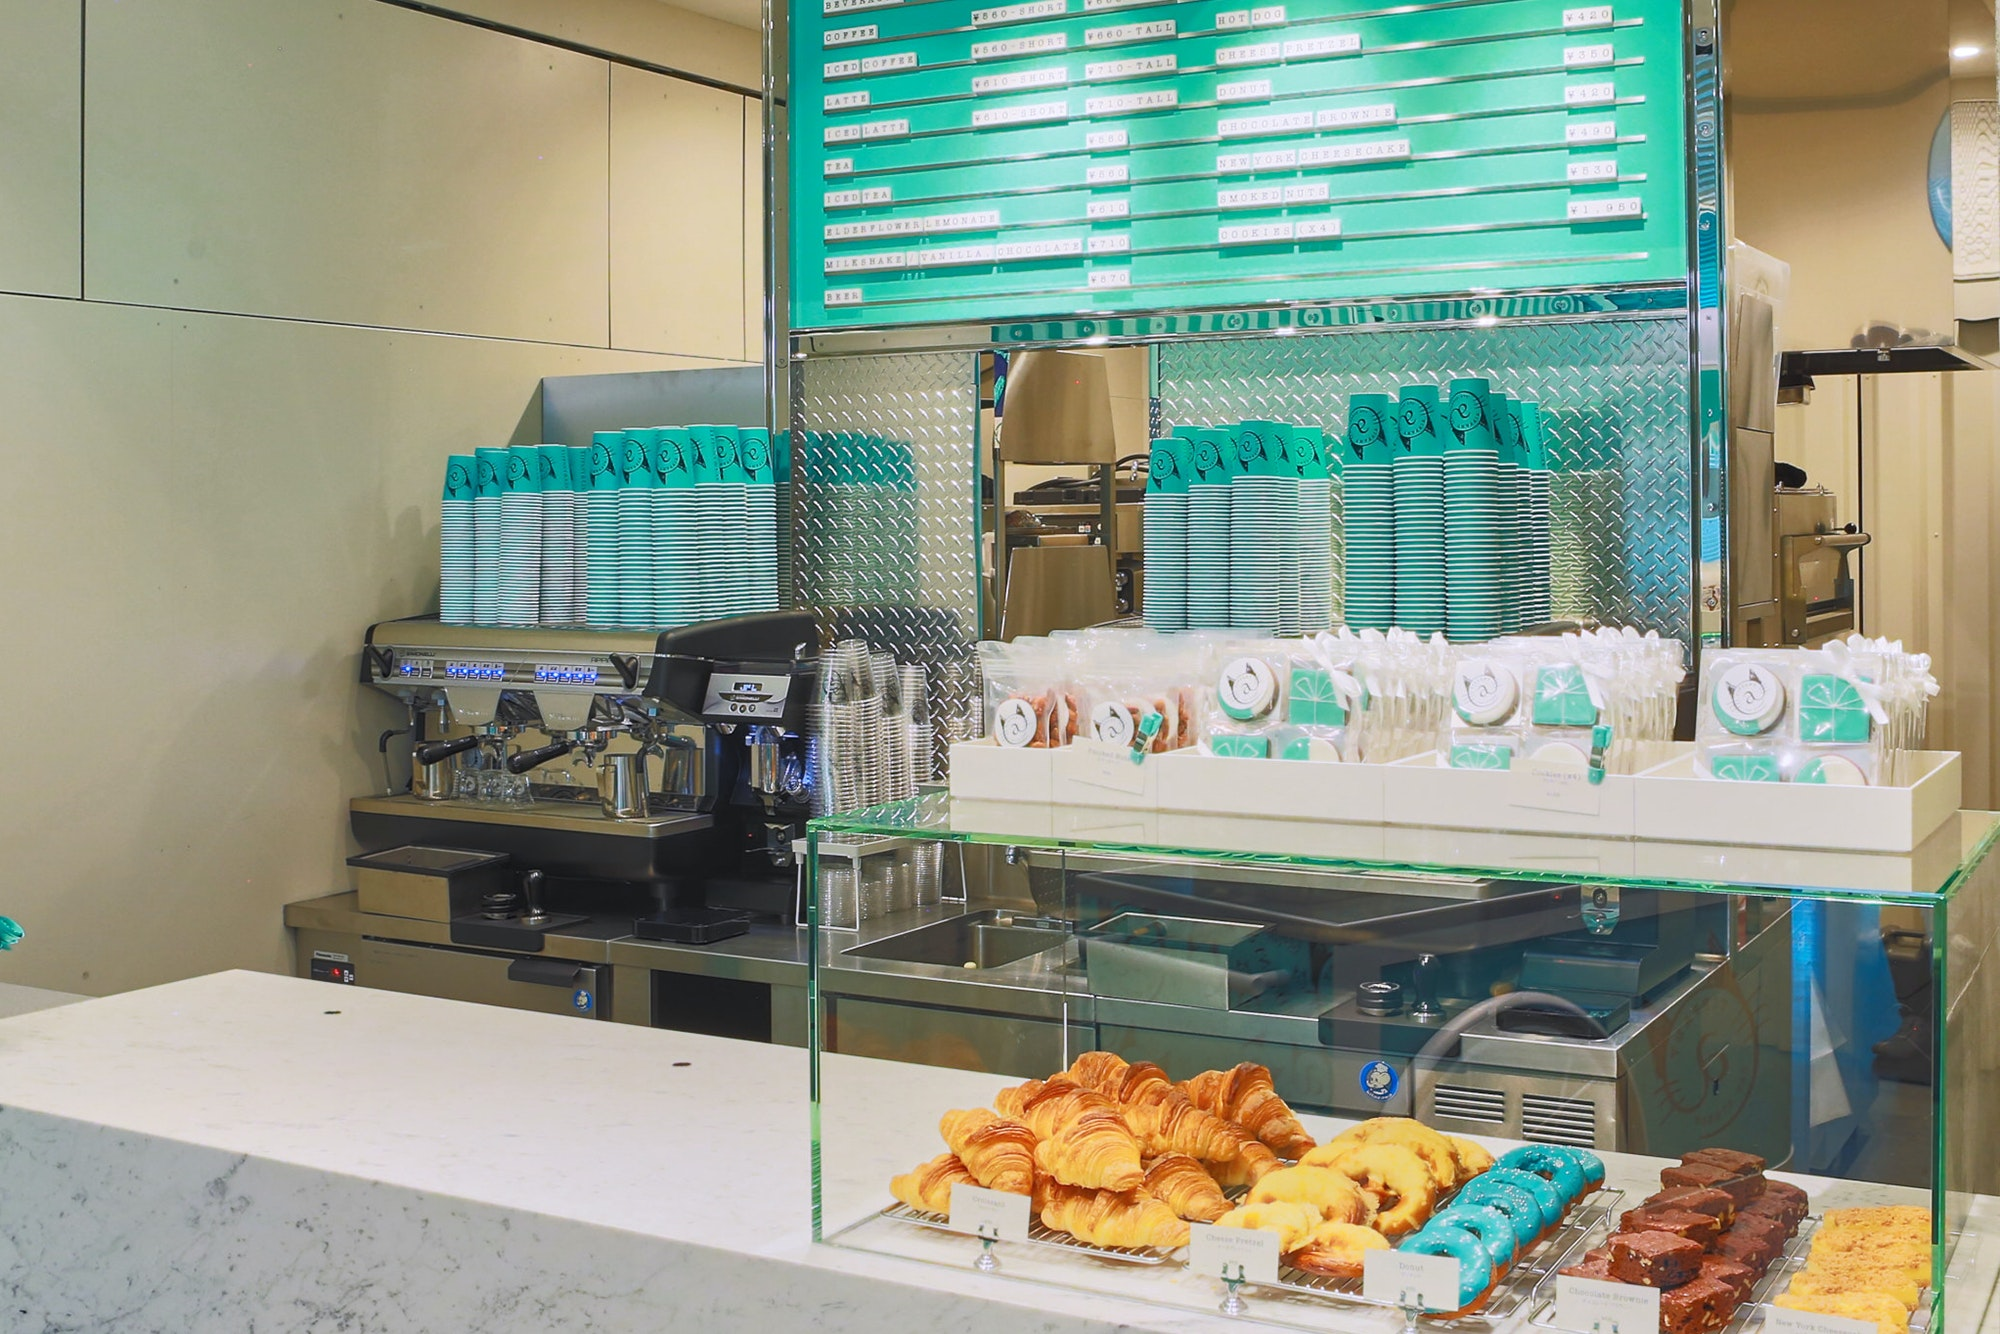 The coffee counter at the Tiffany Cafe in Tokyo.